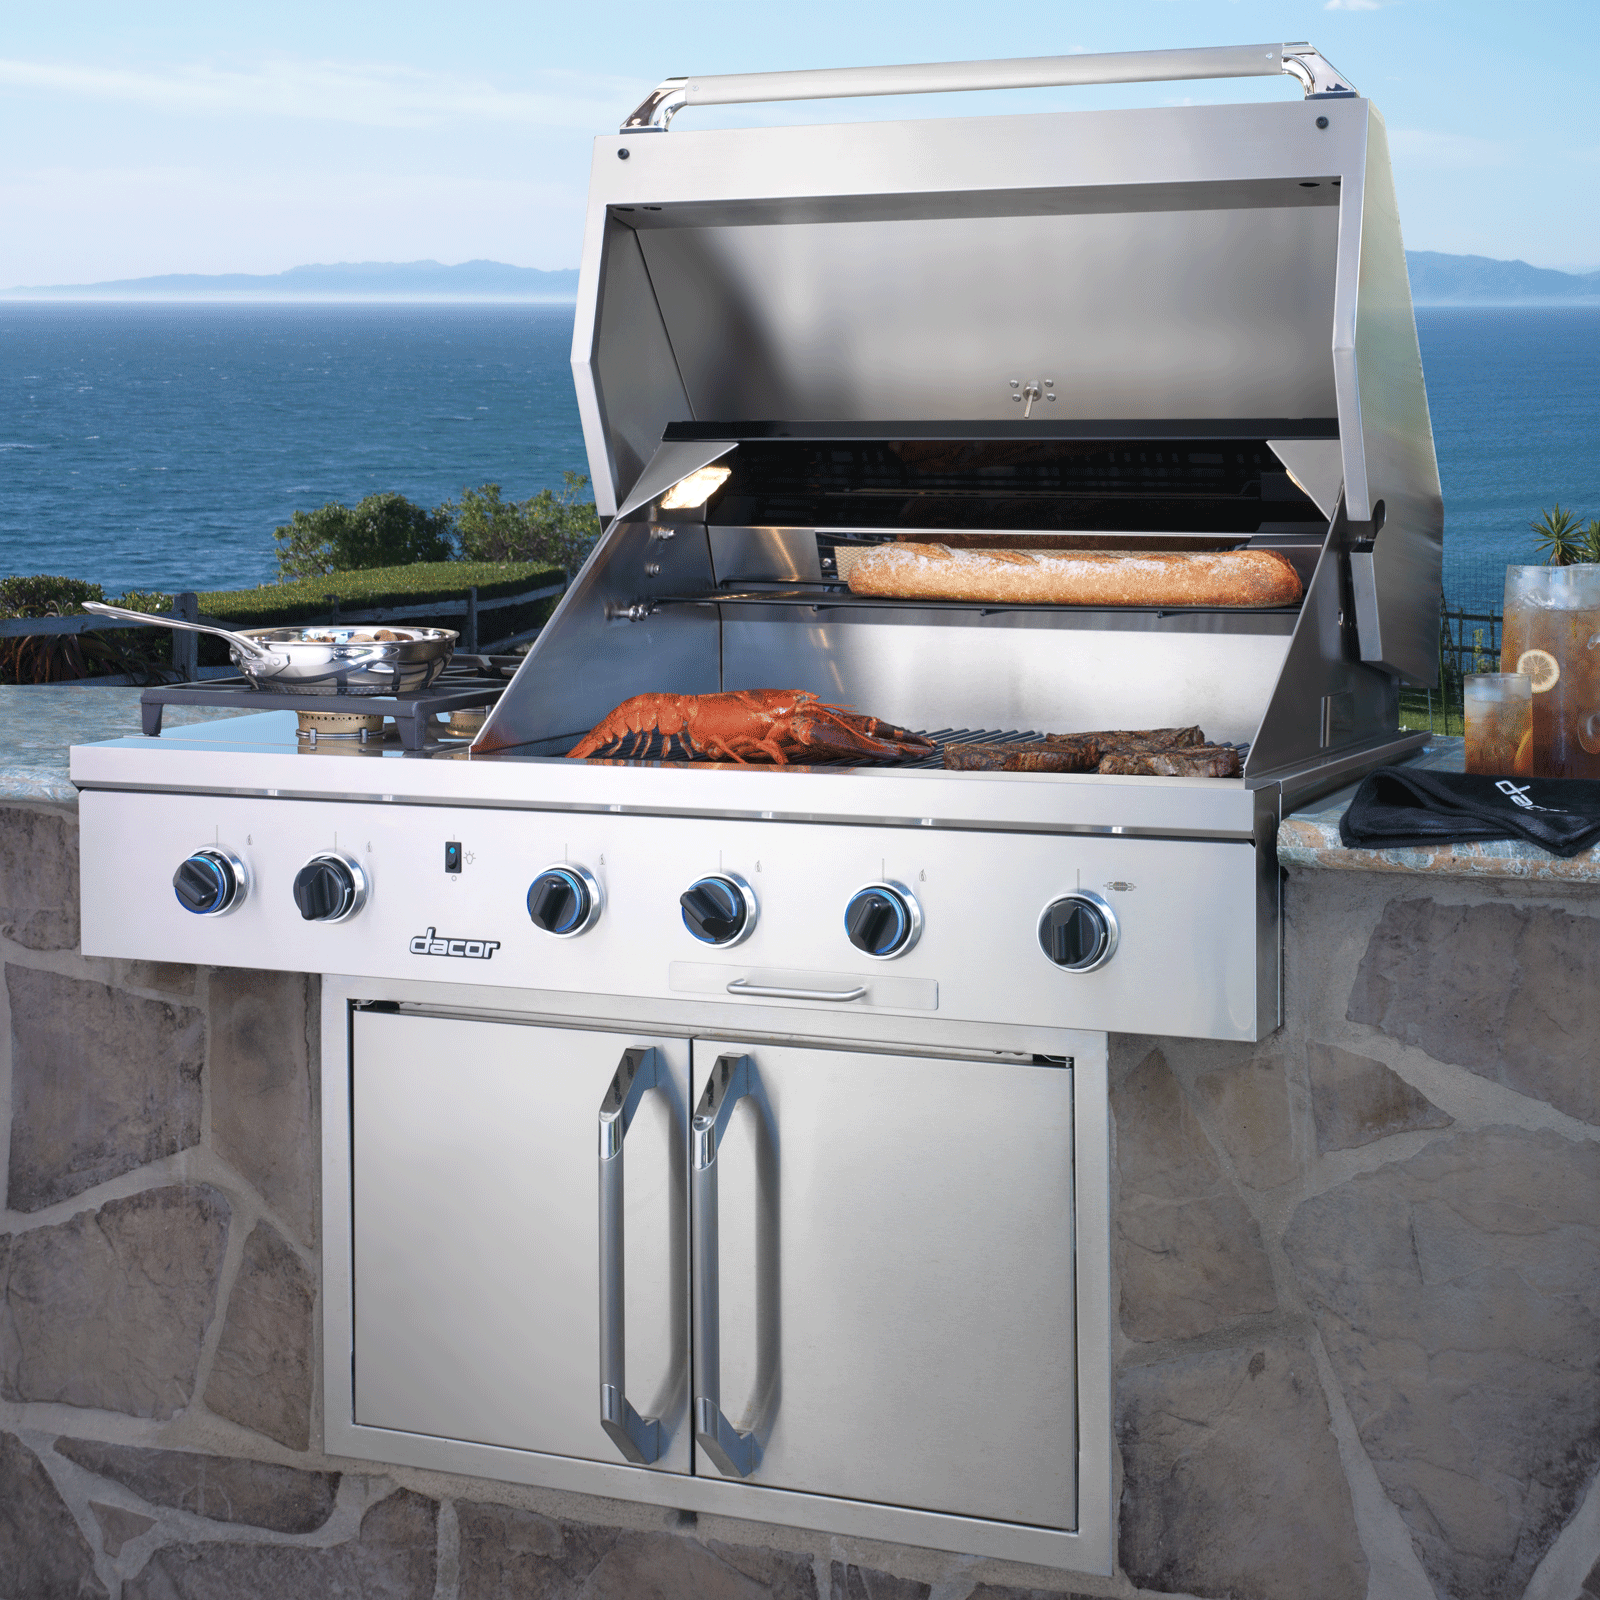 "Dacor Heritage 36"" Outdoor Grill, in Stainless Steel with Chrome Trim, for use with Natural Gas"